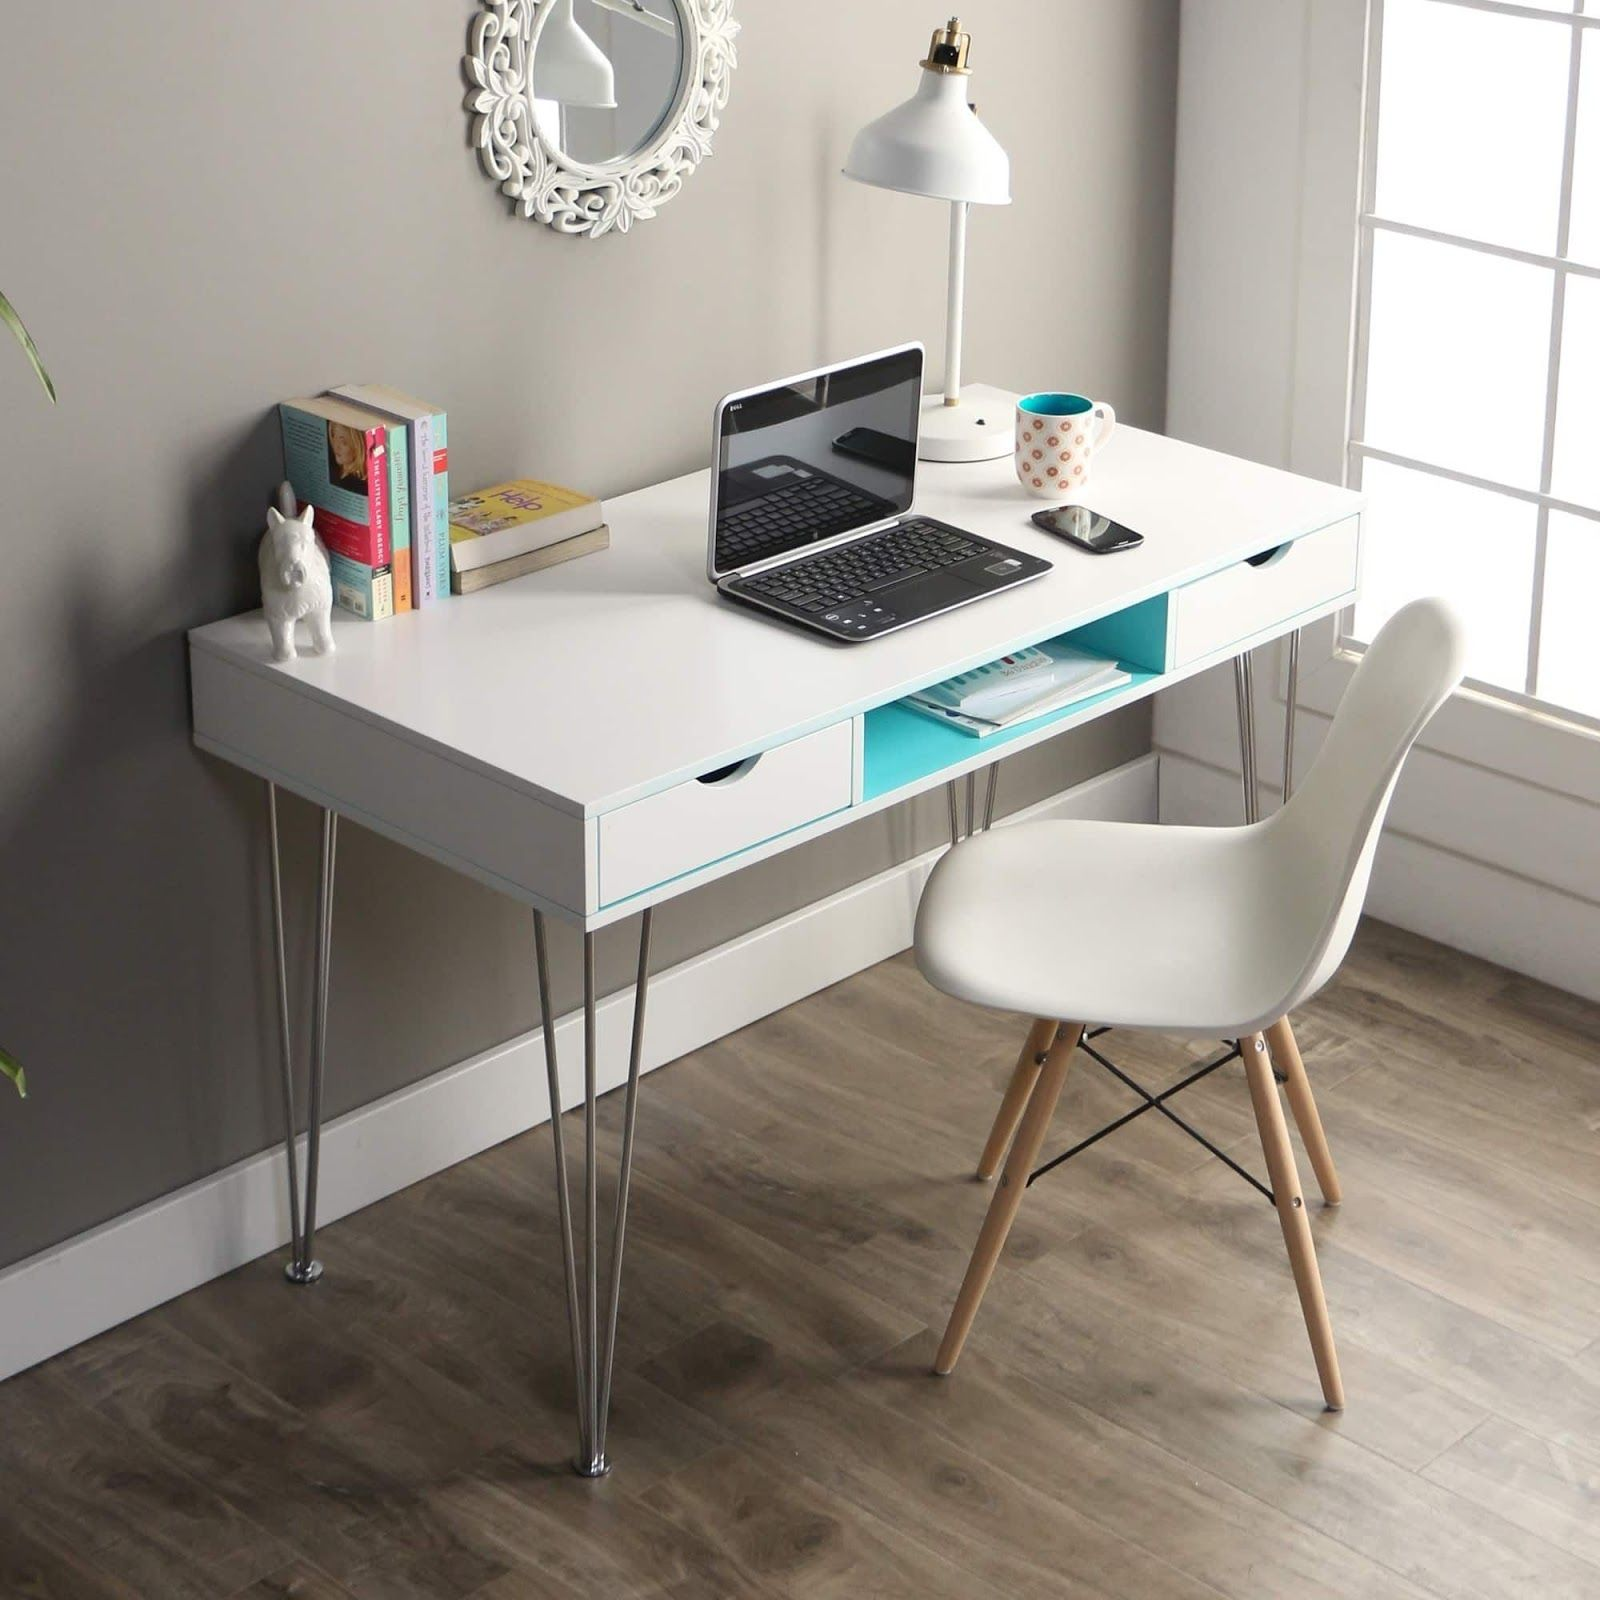 20 jawdroppingly cheap study desk and table ideas study on desk color ideas id=12508